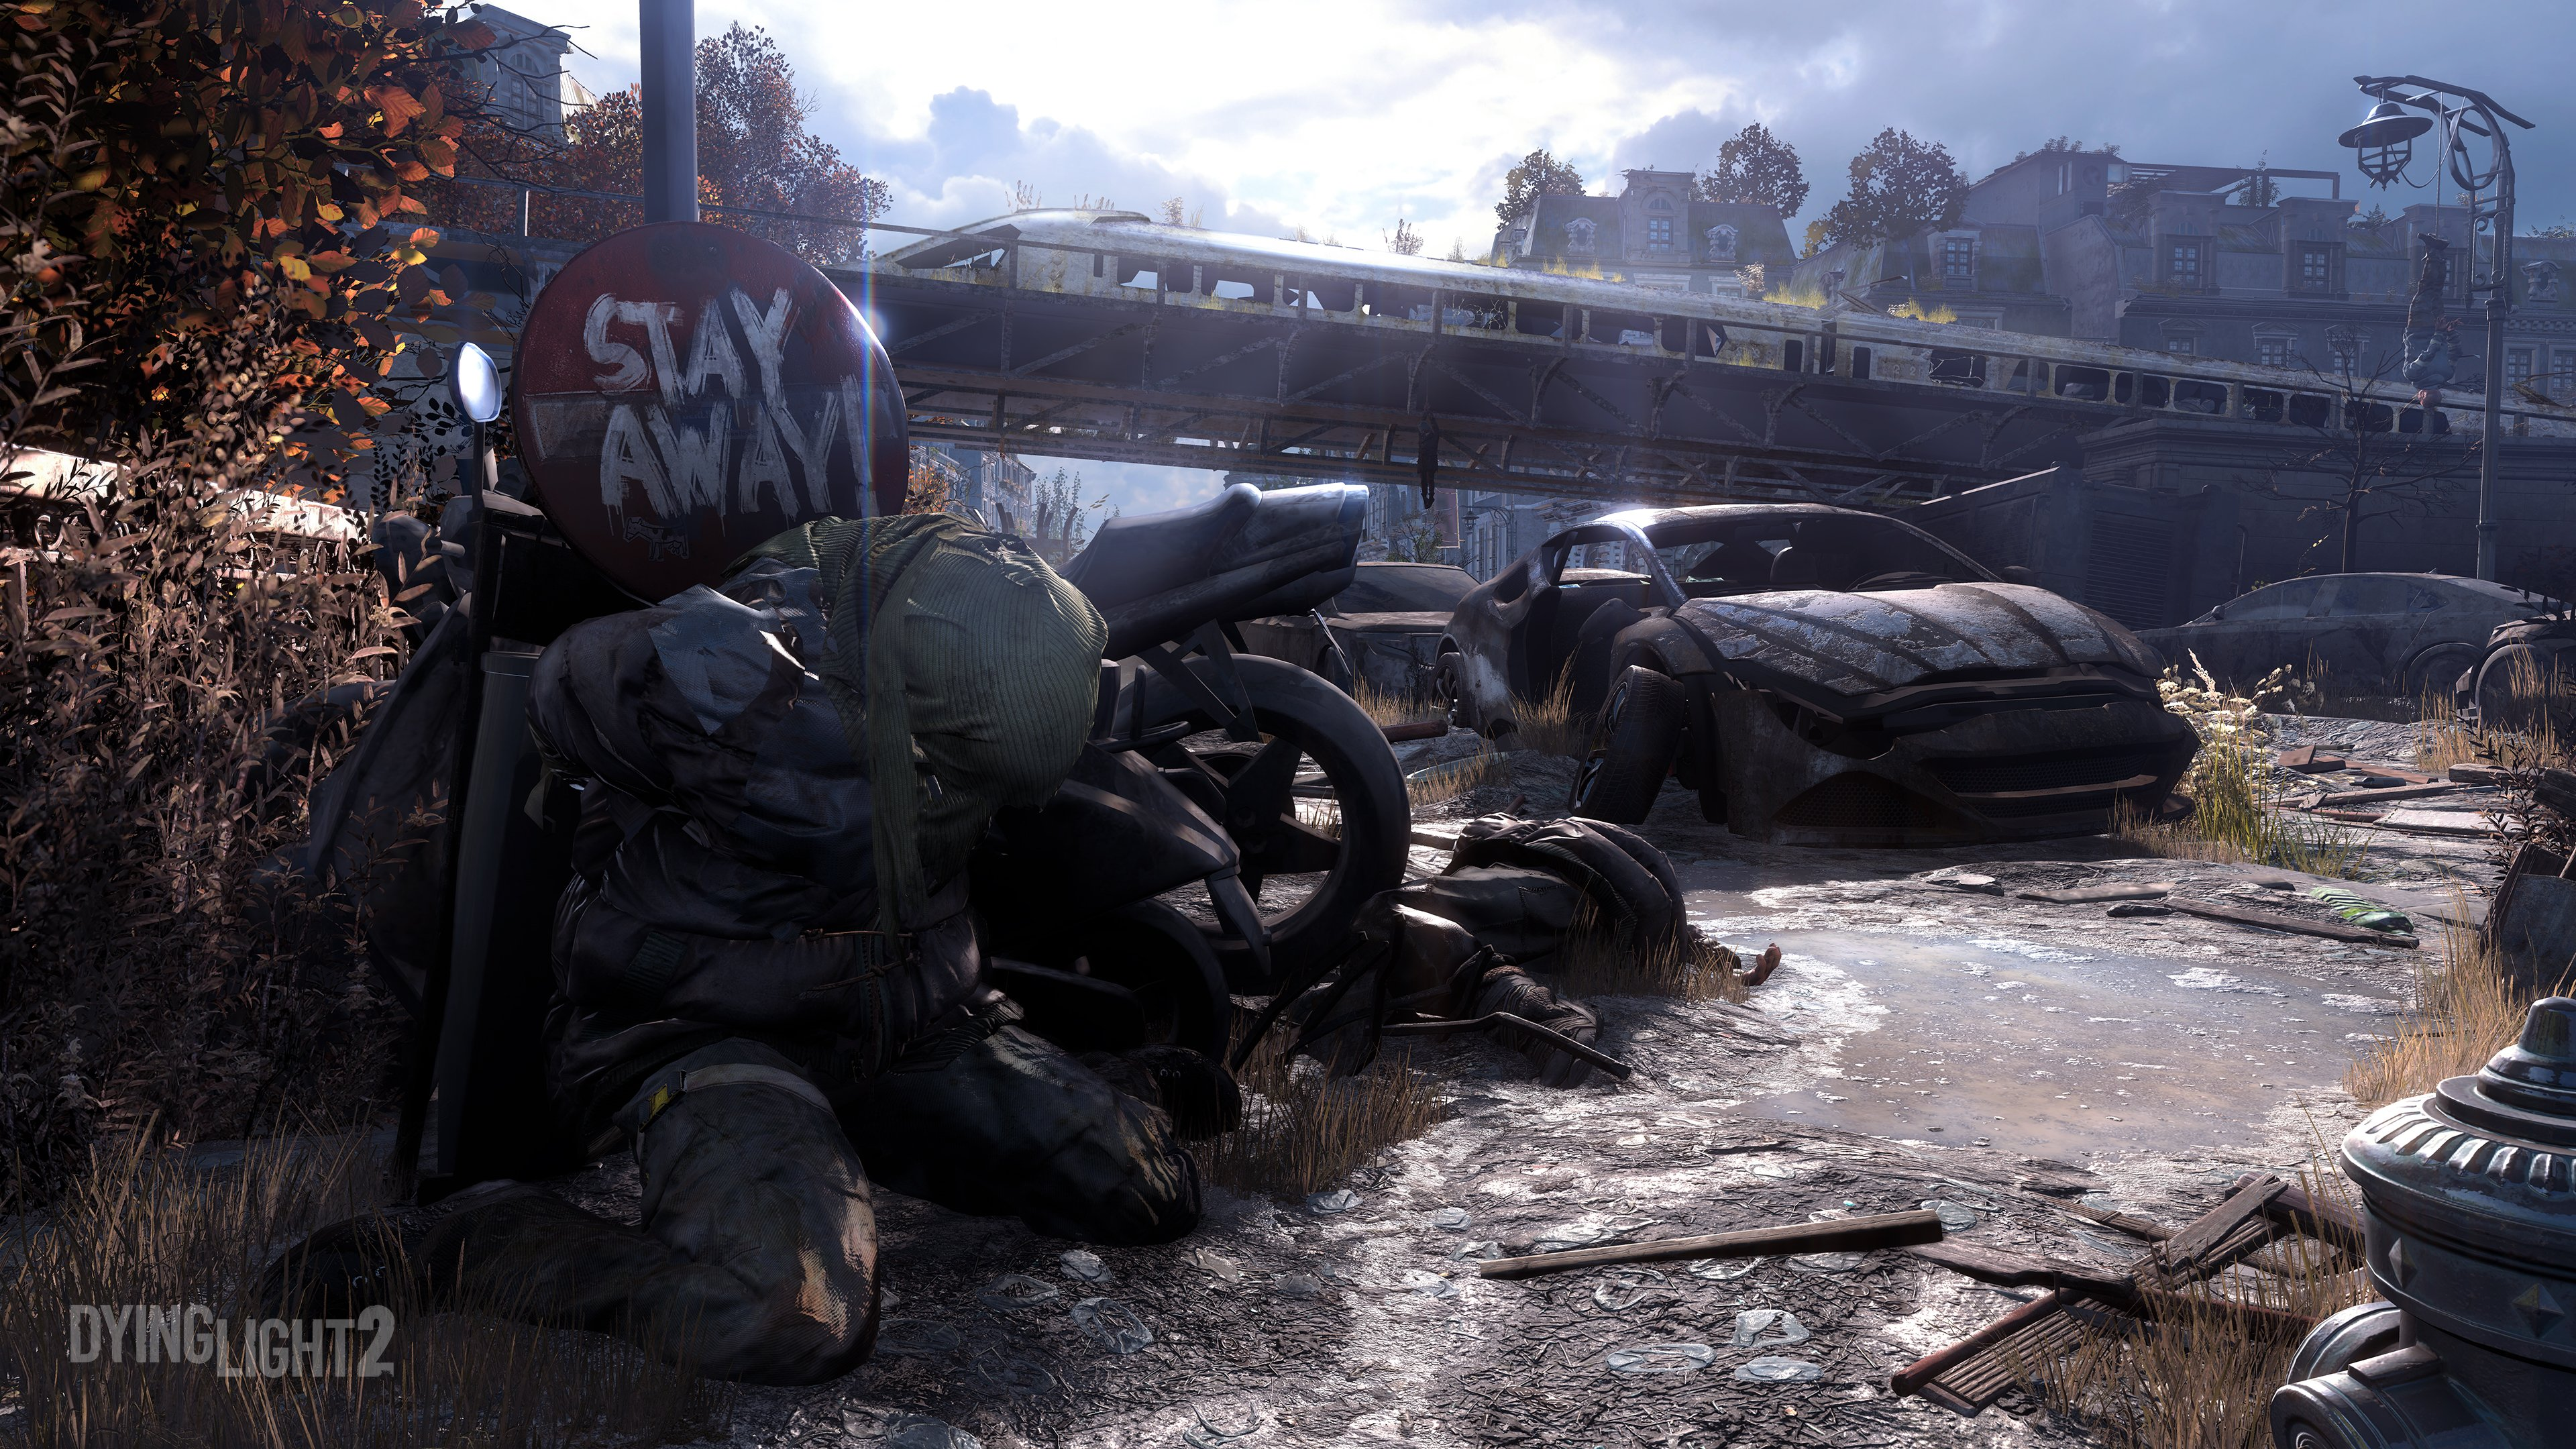 """Dying Light 2 panneau """"stay away"""""""